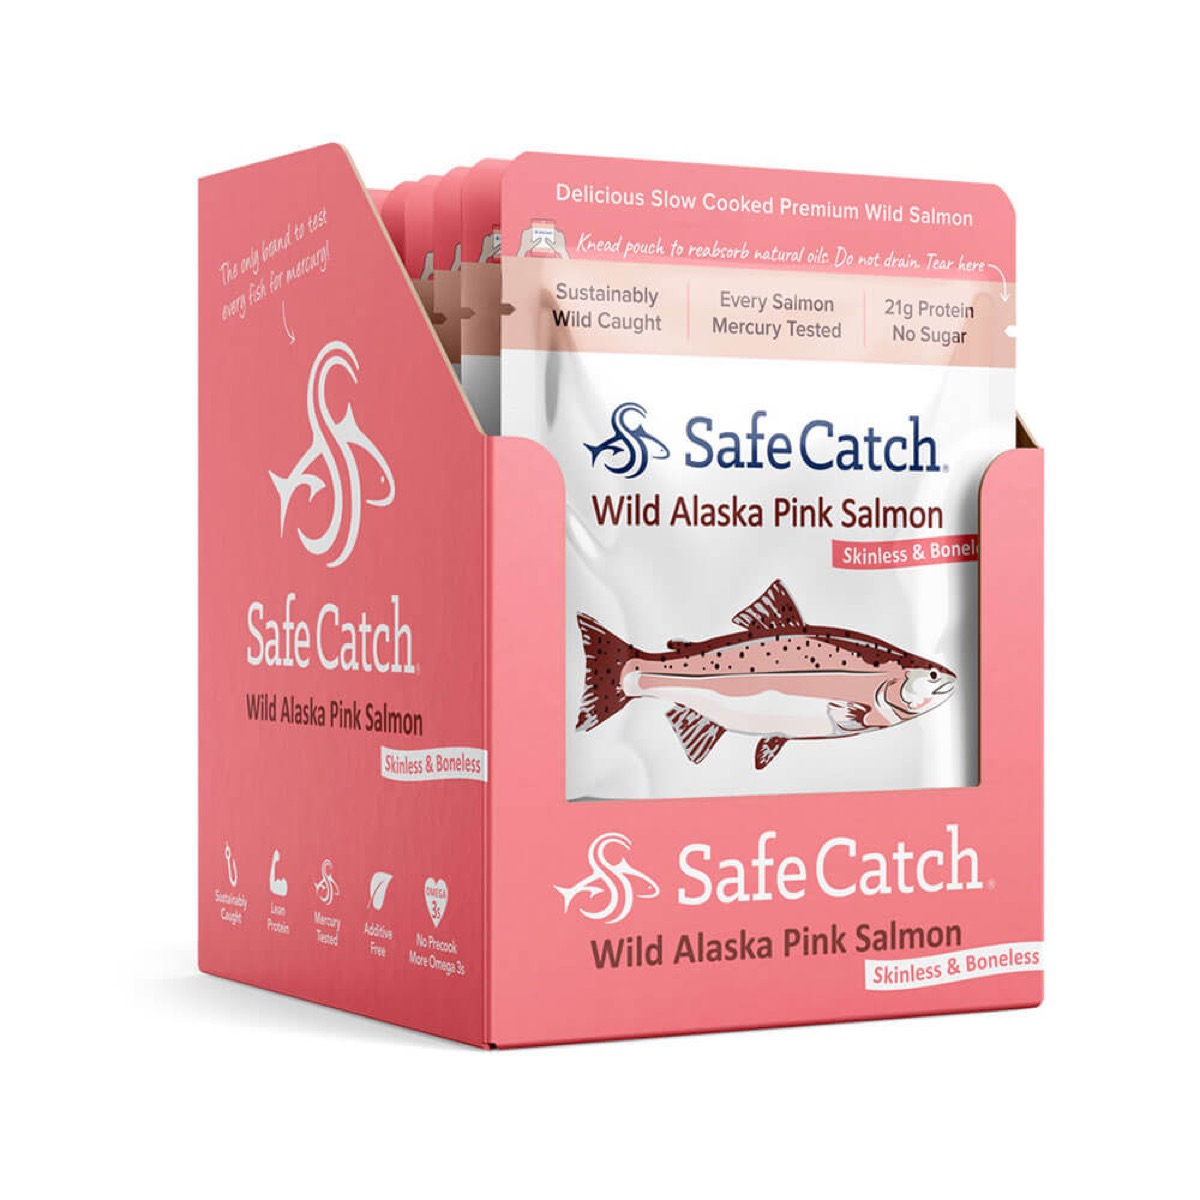 cardboard box full of pink packages of salmon from safecatch